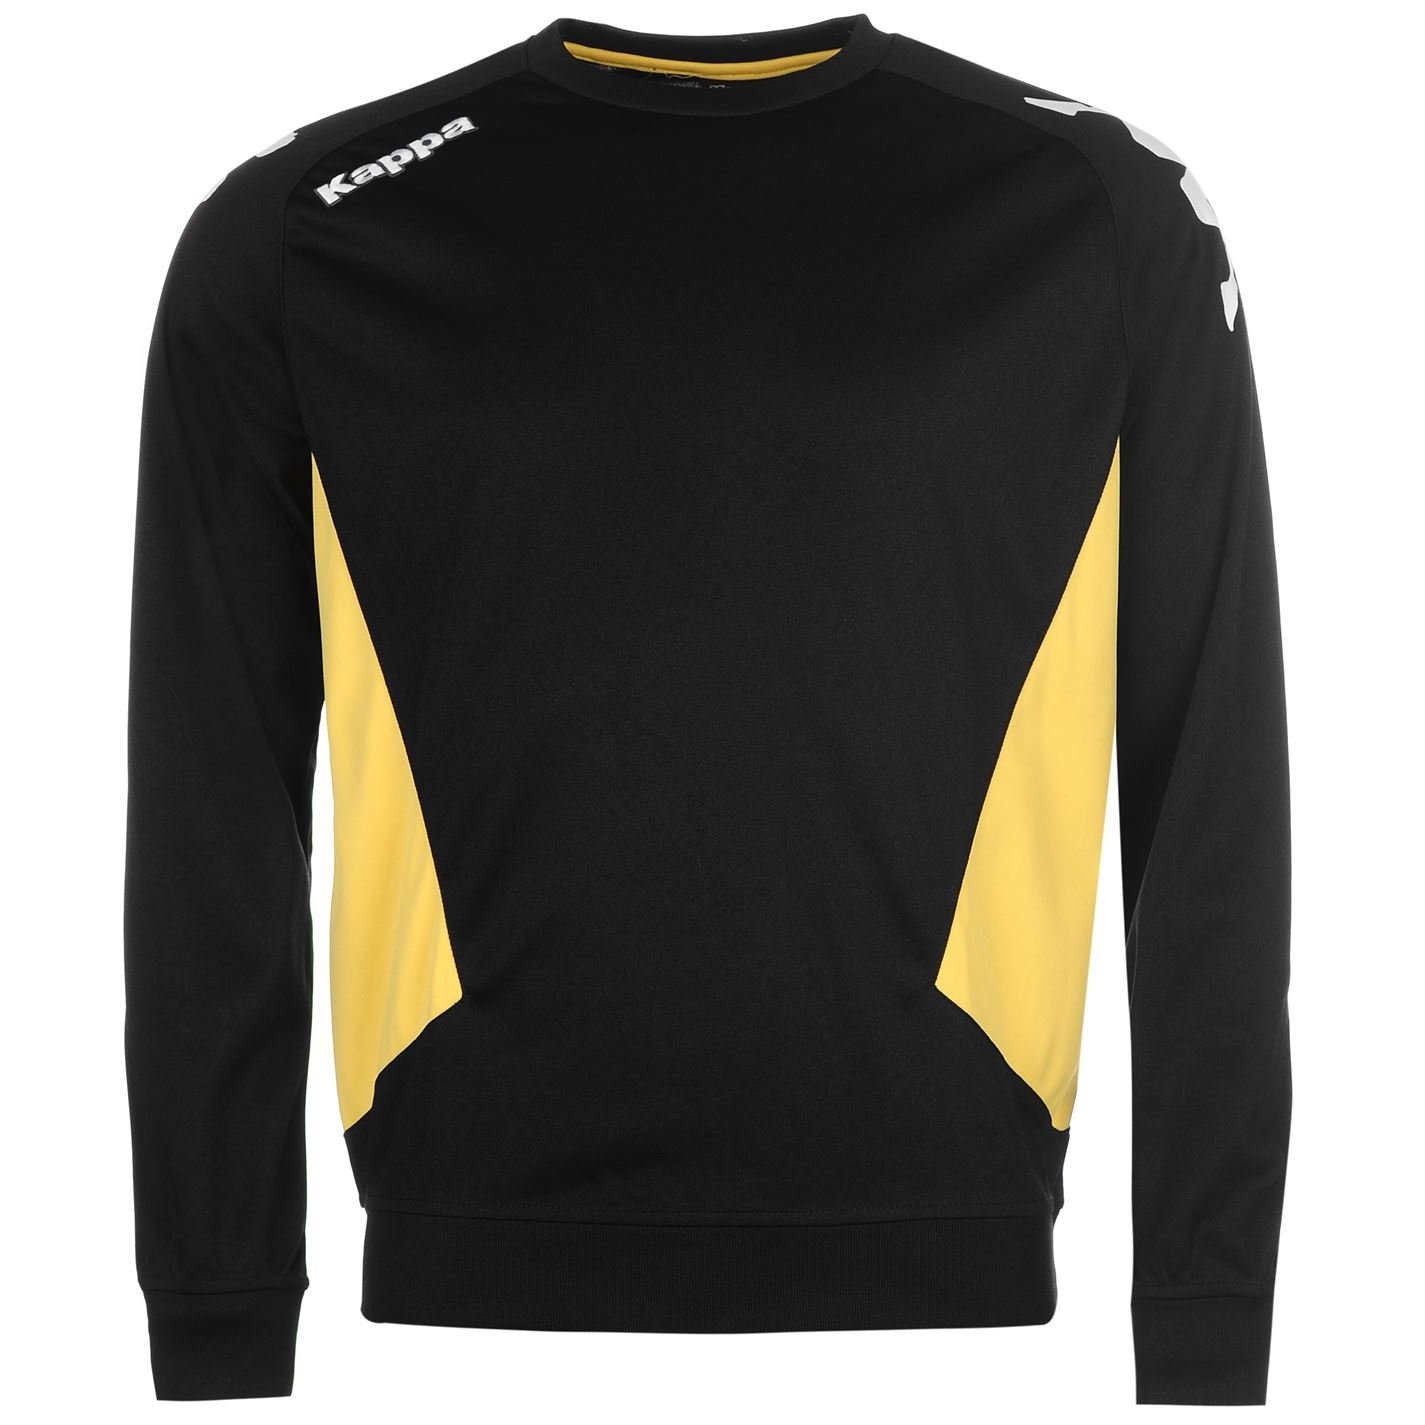 Kappa Mens Cremone Sweater Jumper Pullover Football Top